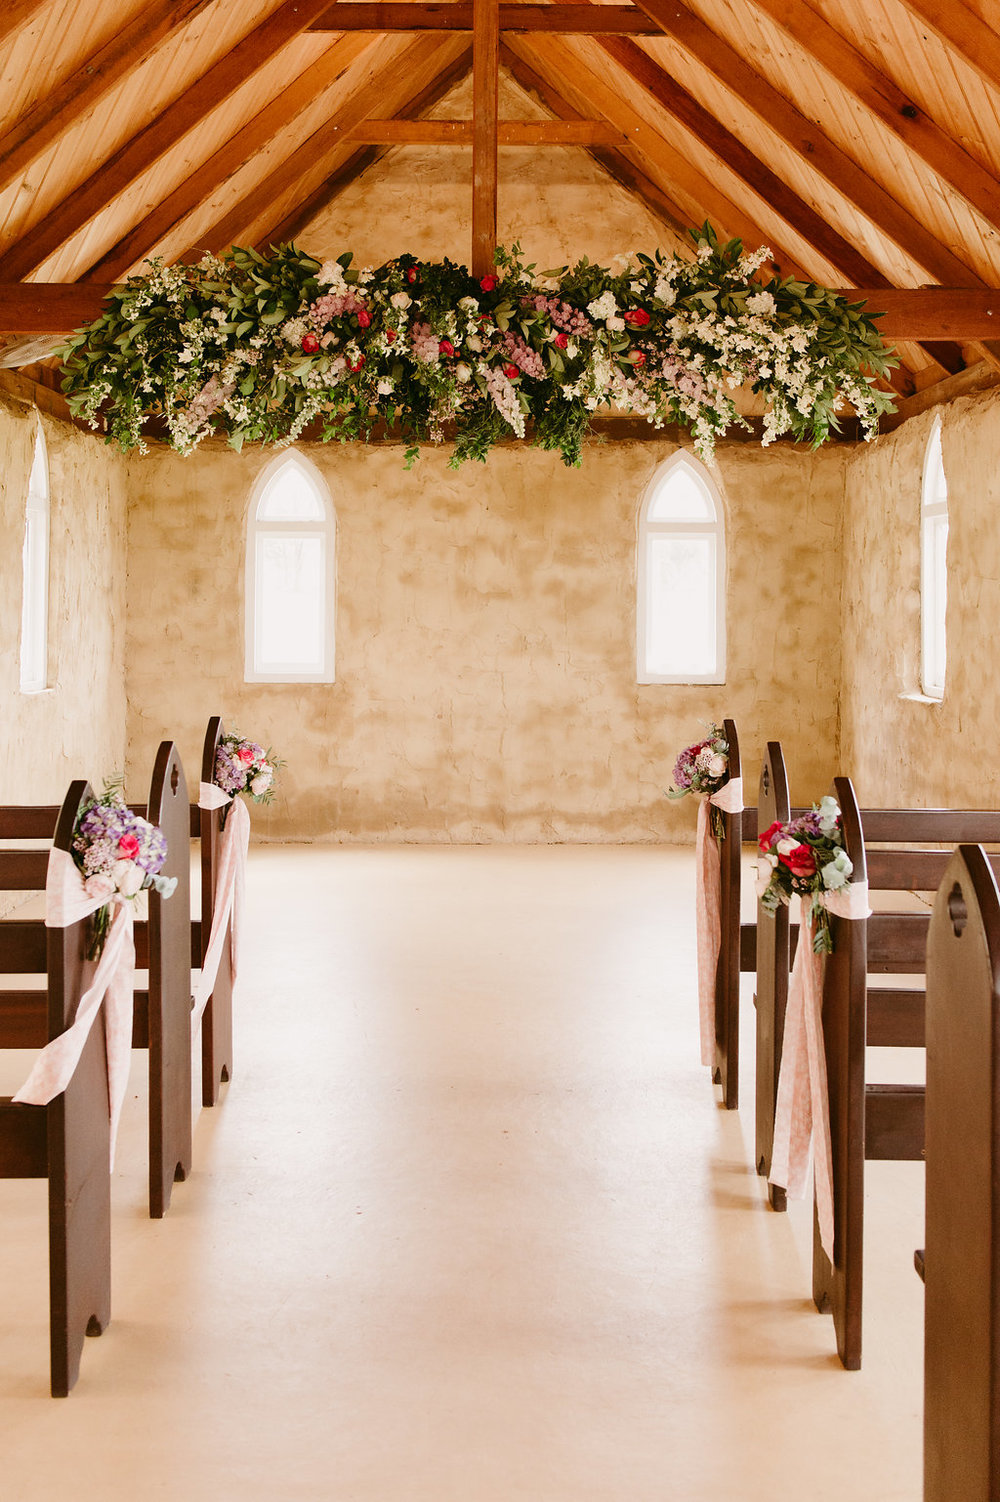 Hanging Flowers Installation & Ceremony Pew Flowers - Wedding Flowers Hunter Valley